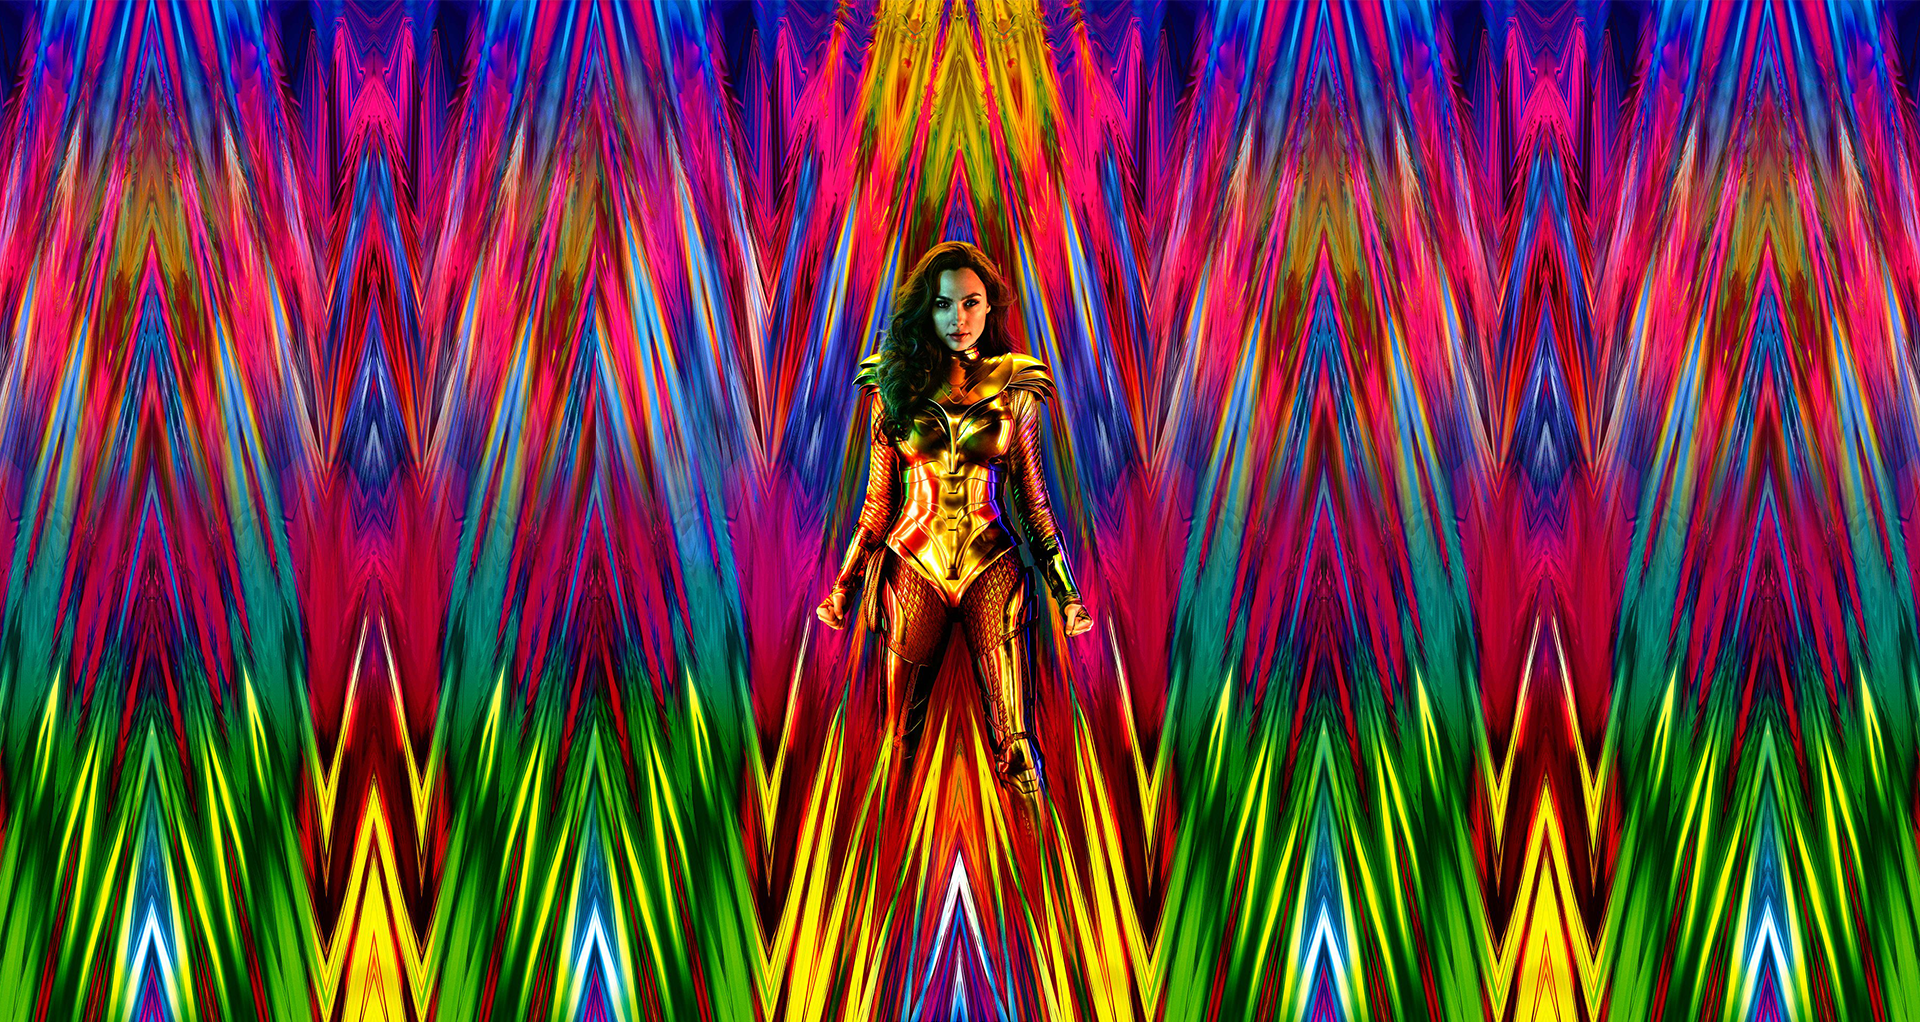 Made A Desktop Version Of The Recently Released Wonder Woman 1984 Poster 1920 X 1080 Wonder Woman Desktop Background Images Poster